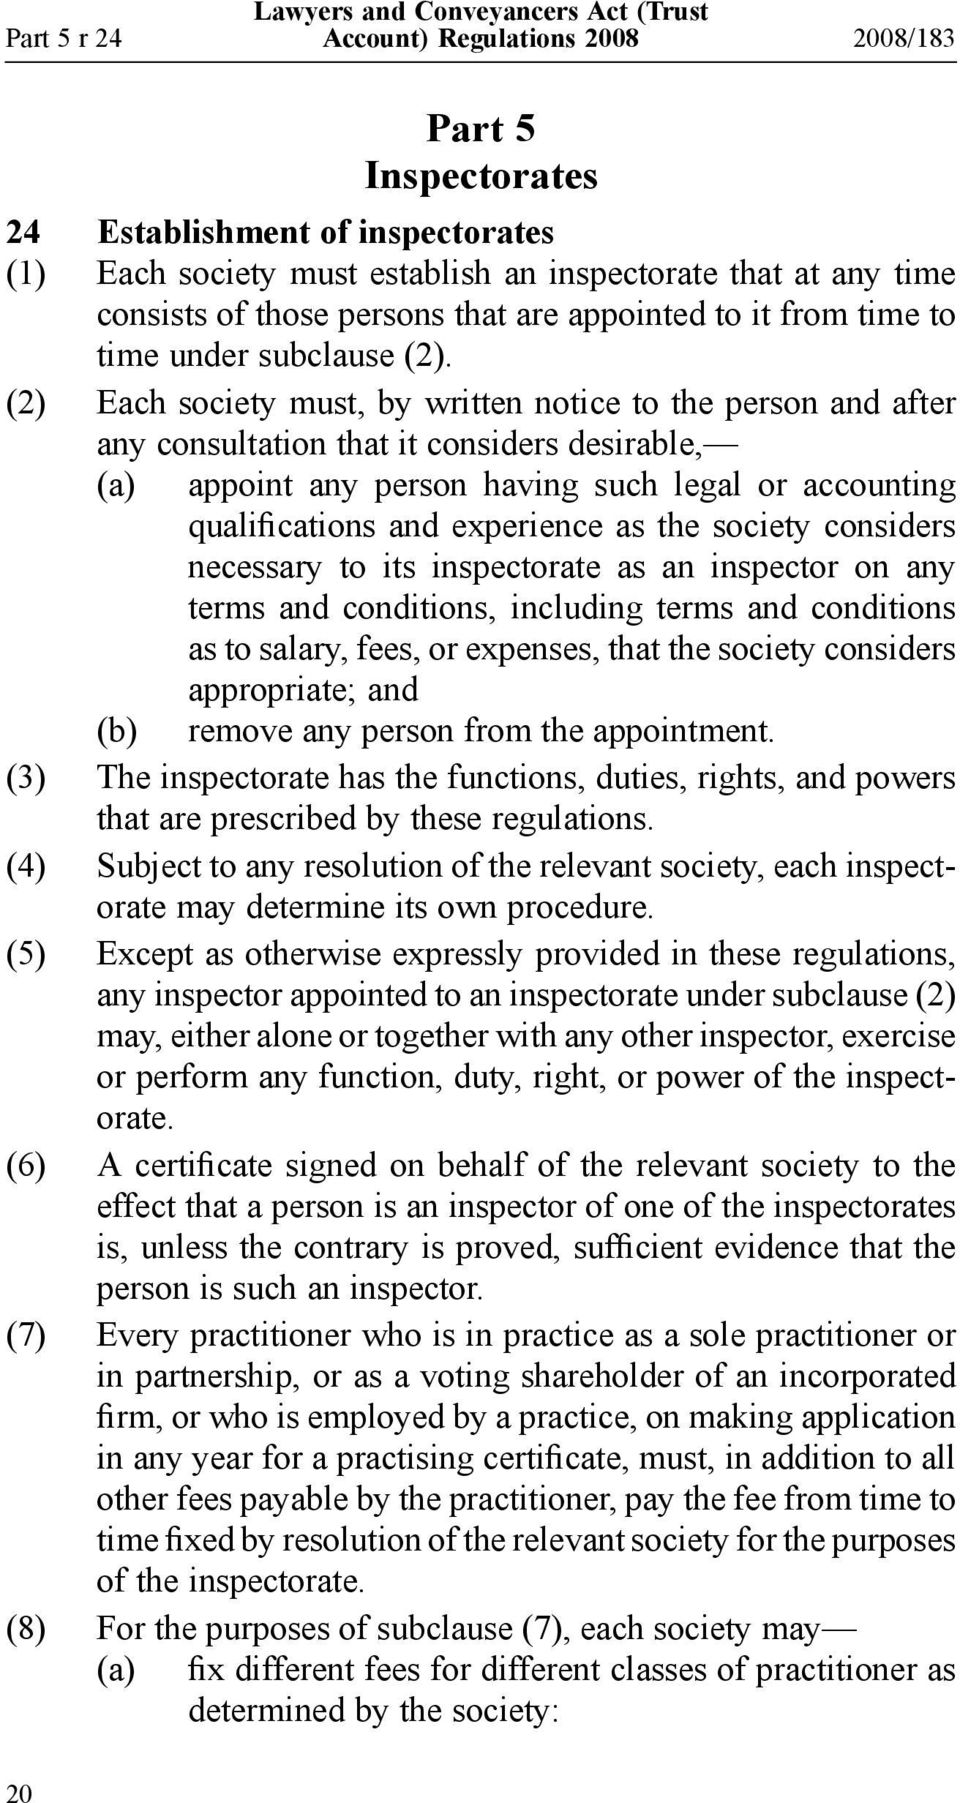 (2) Each society must, by written notice to the person and after any consultation that it considers desirable, (a) appoint any person having such legal or accounting qualifications and experience as